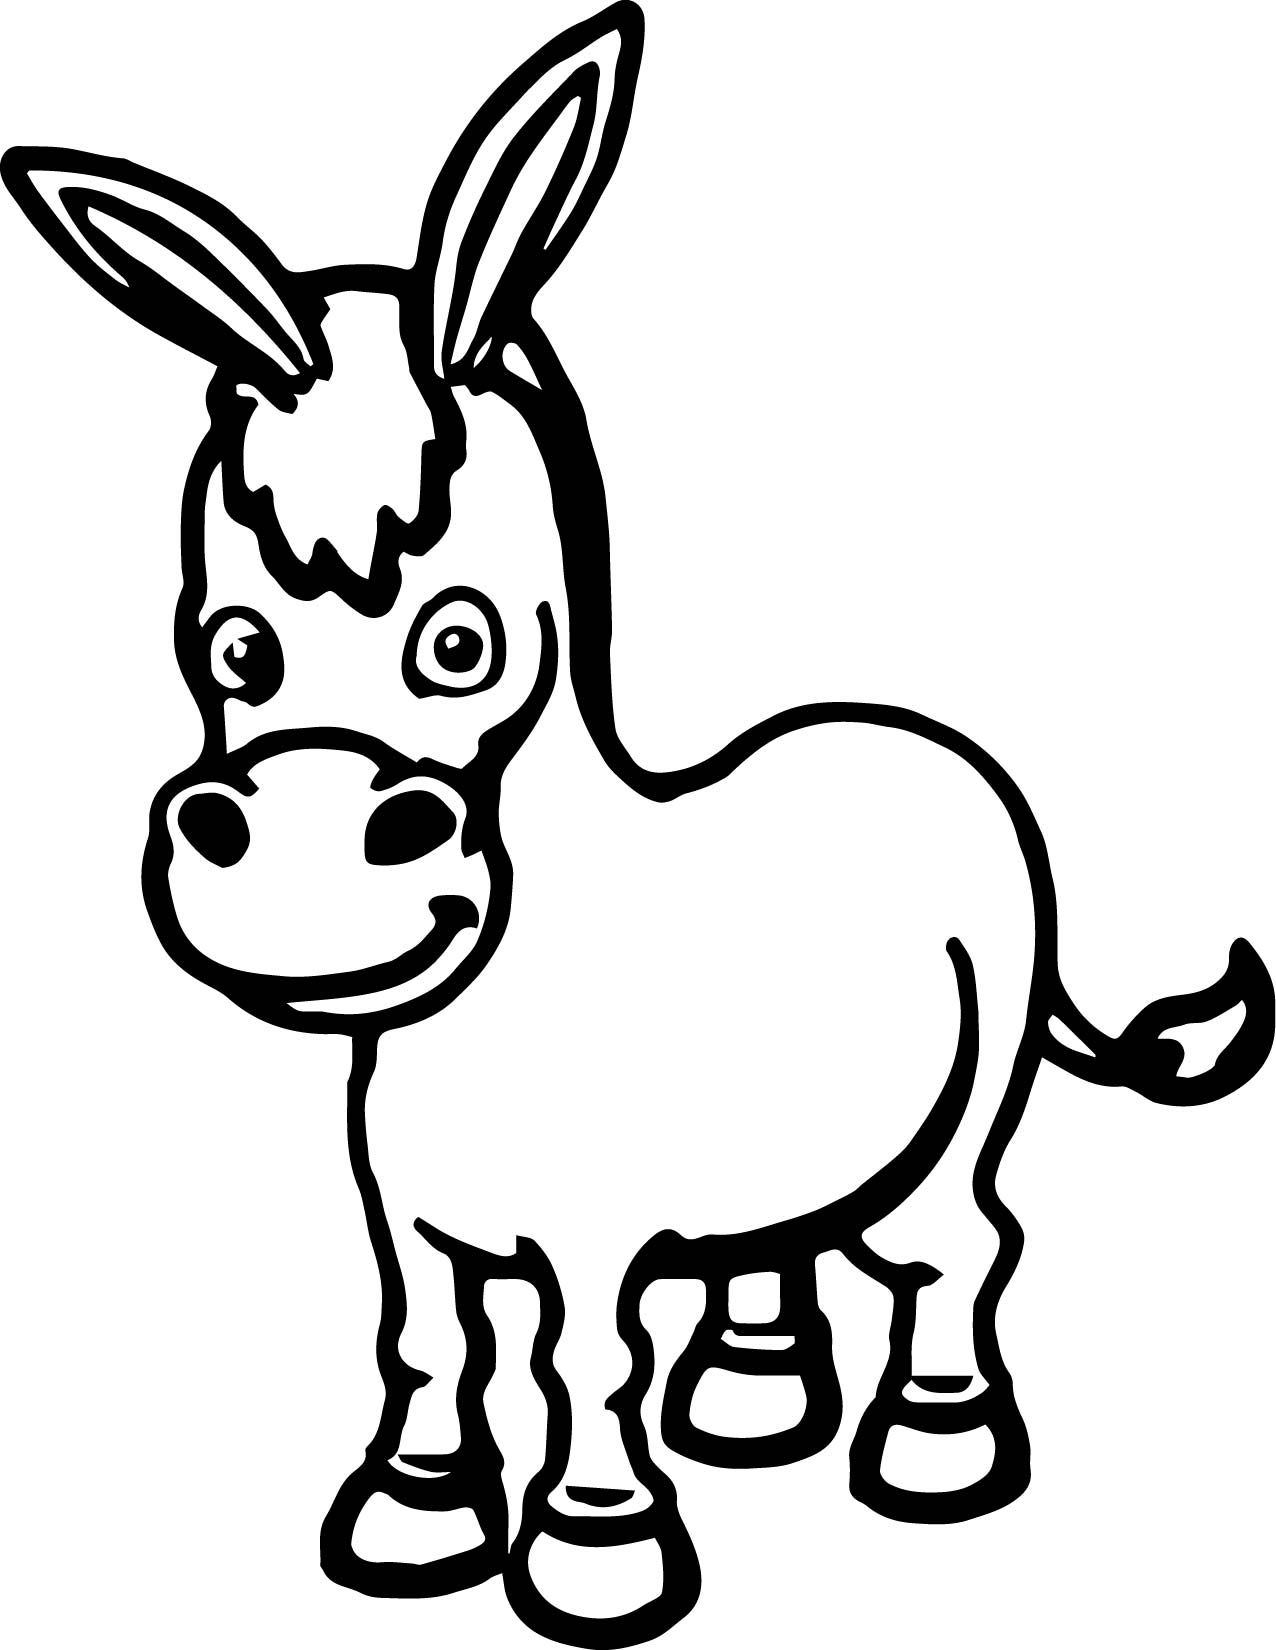 donkey colouring pages free printable donkey coloring pages tripafethna donkey colouring pages